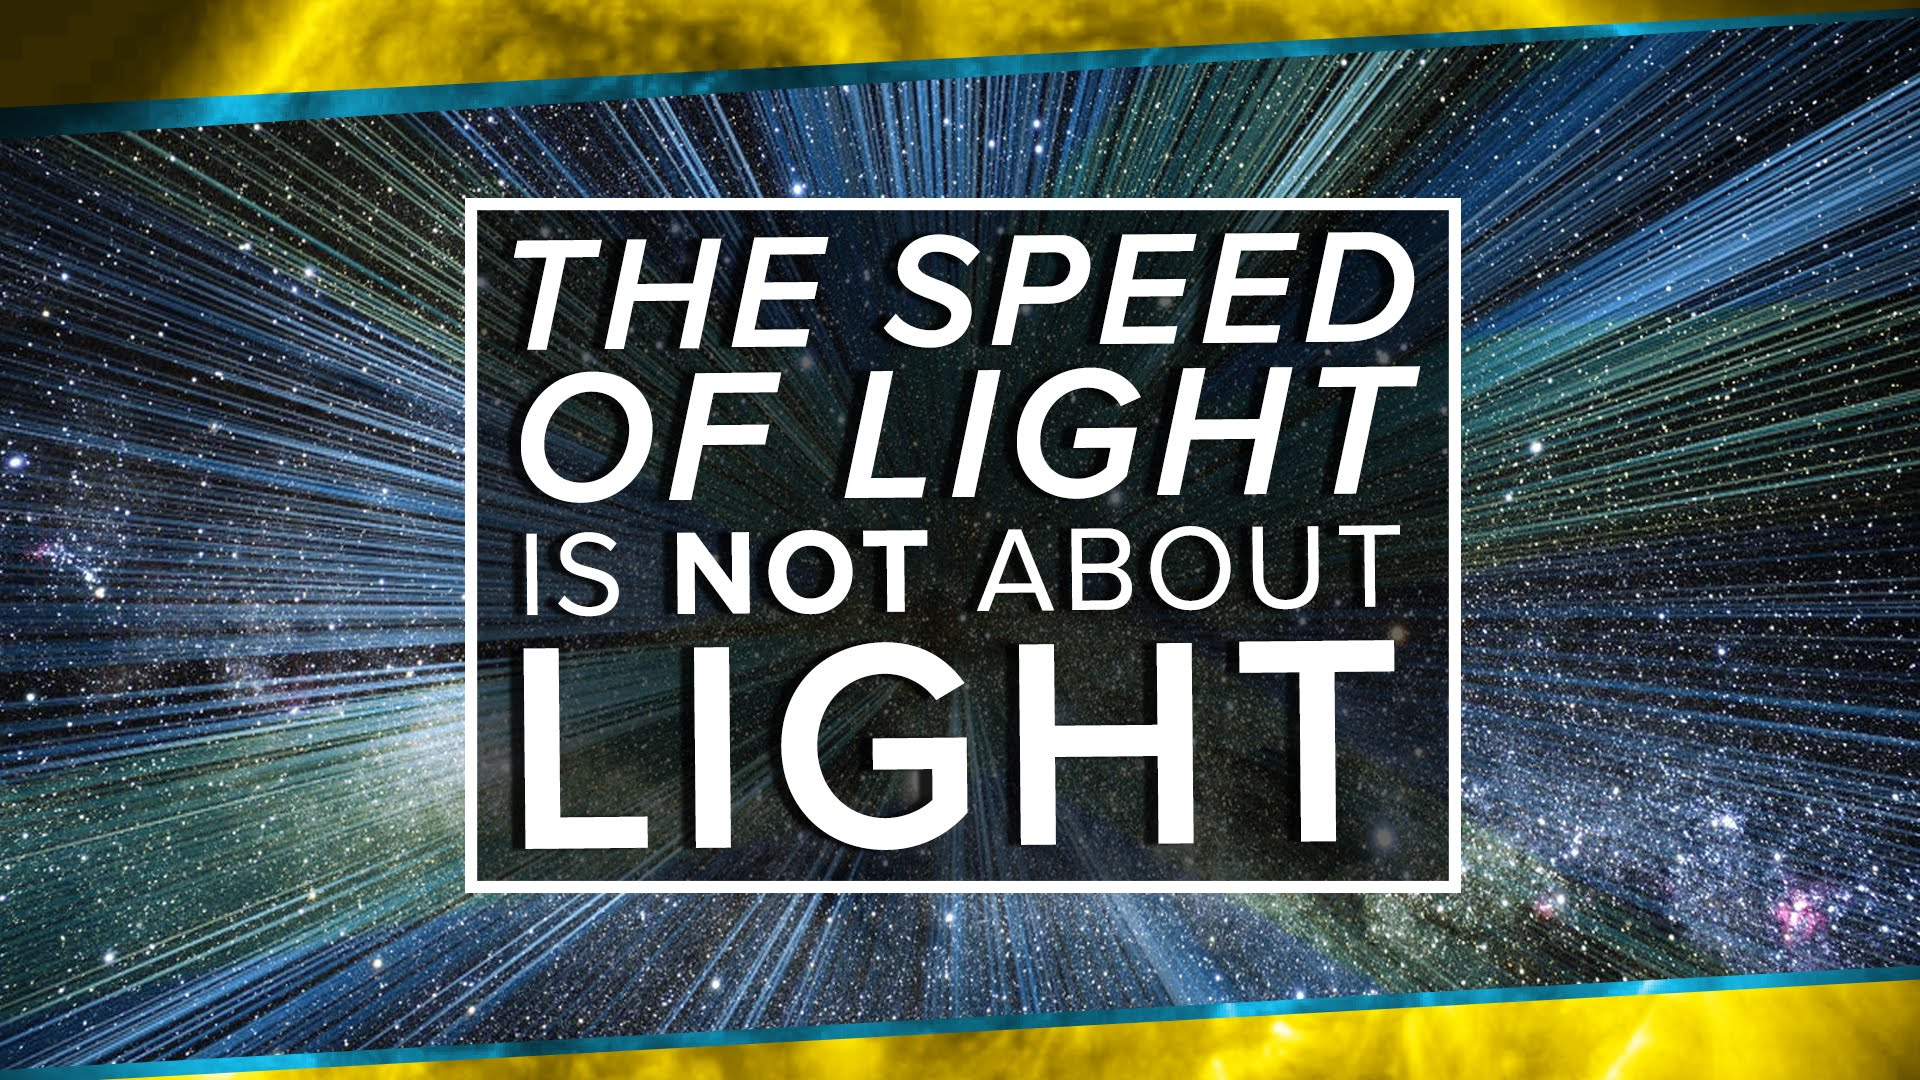 The Speed of Light is NOT About Light